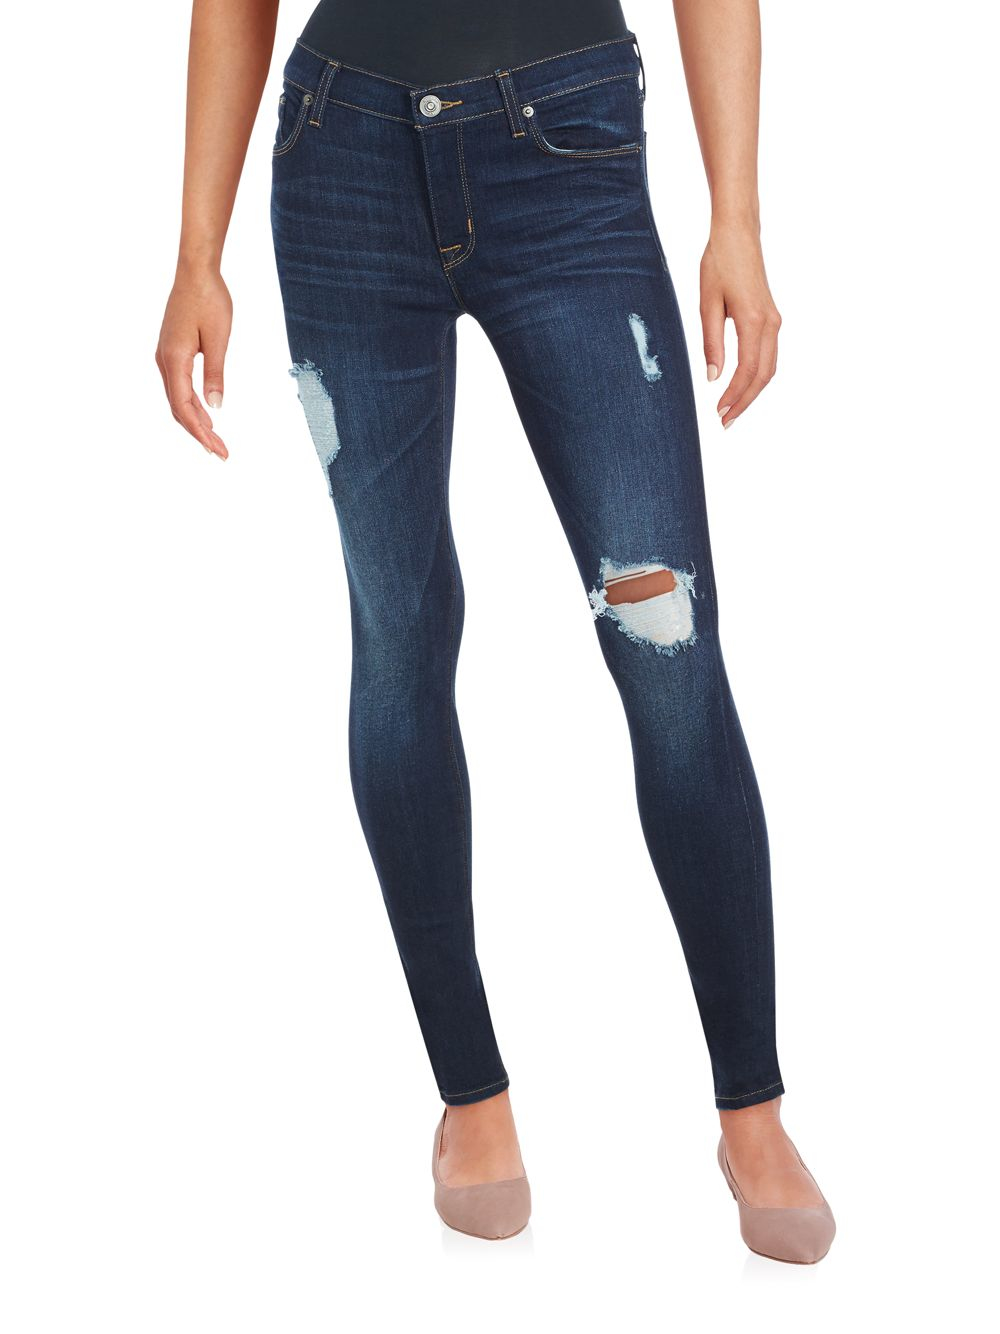 Lyst - Hudson Jeans Distressed Skinny Jeans in Blue